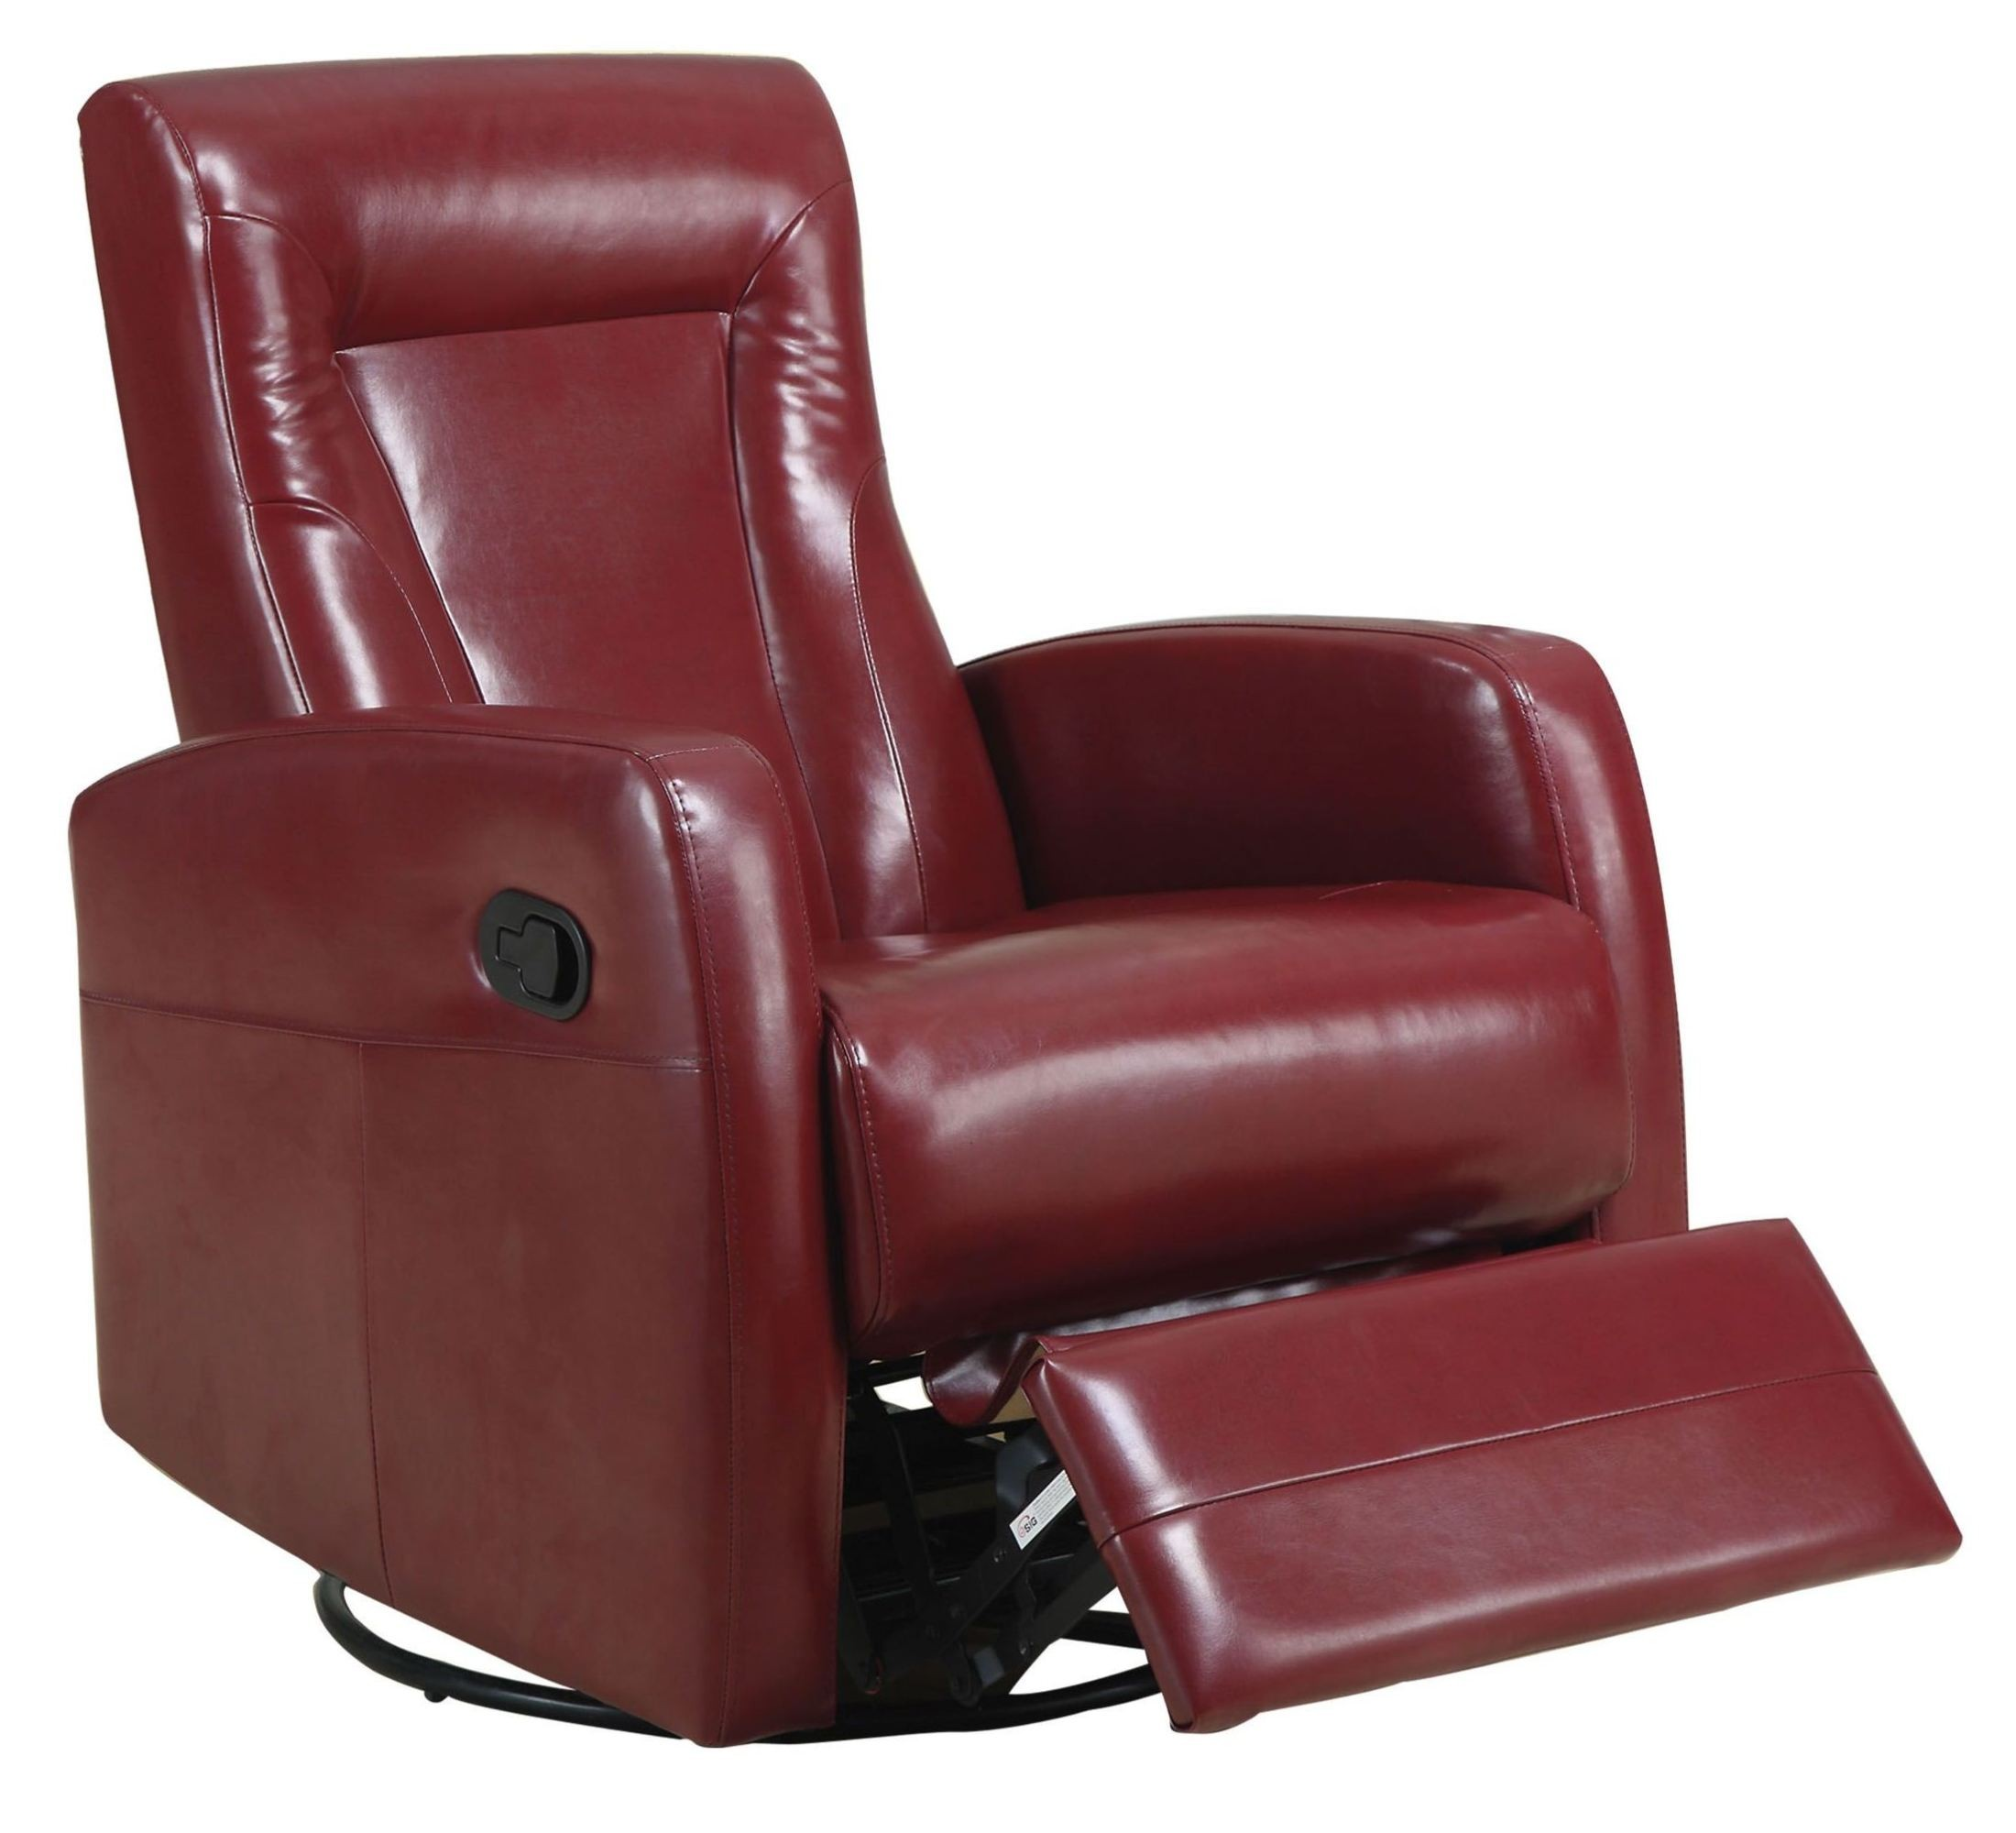 Red Swivel Rocker Recliner From Monarch 8082rd Coleman